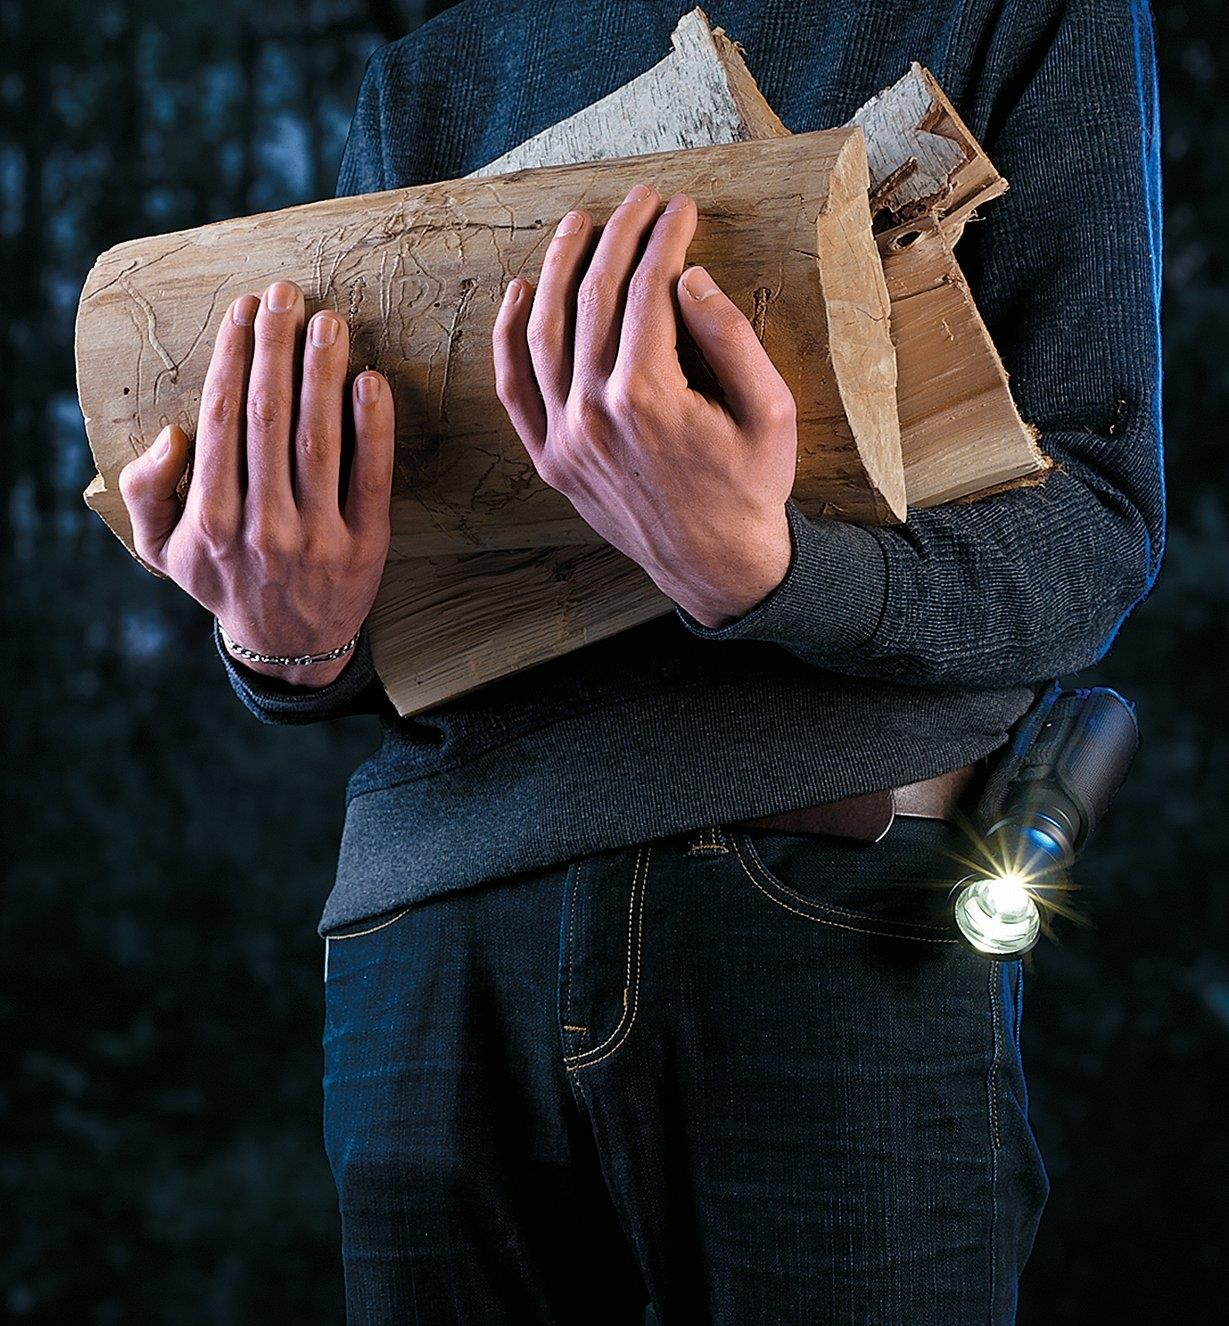 A person with a flashlight in a holster secured to their belt, carrying an armload of firewood